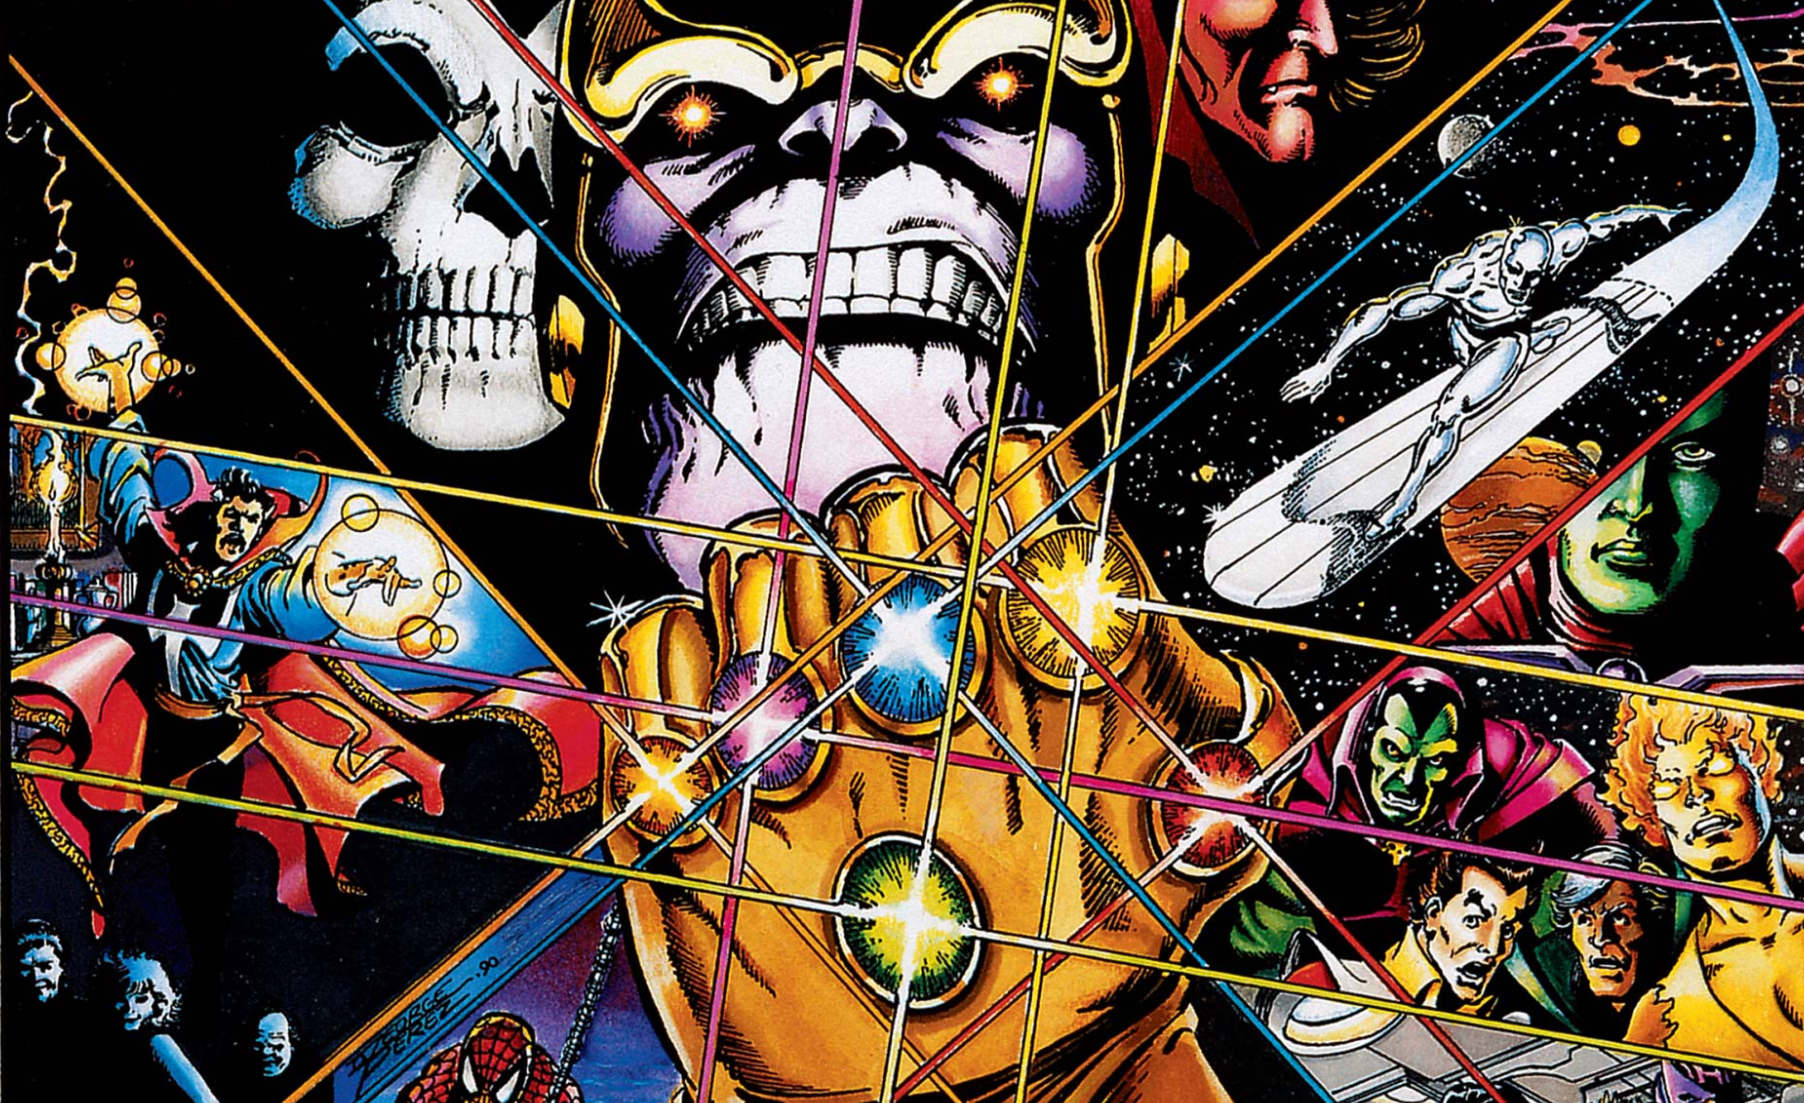 How does Avengers: Infinity War end in the comics?